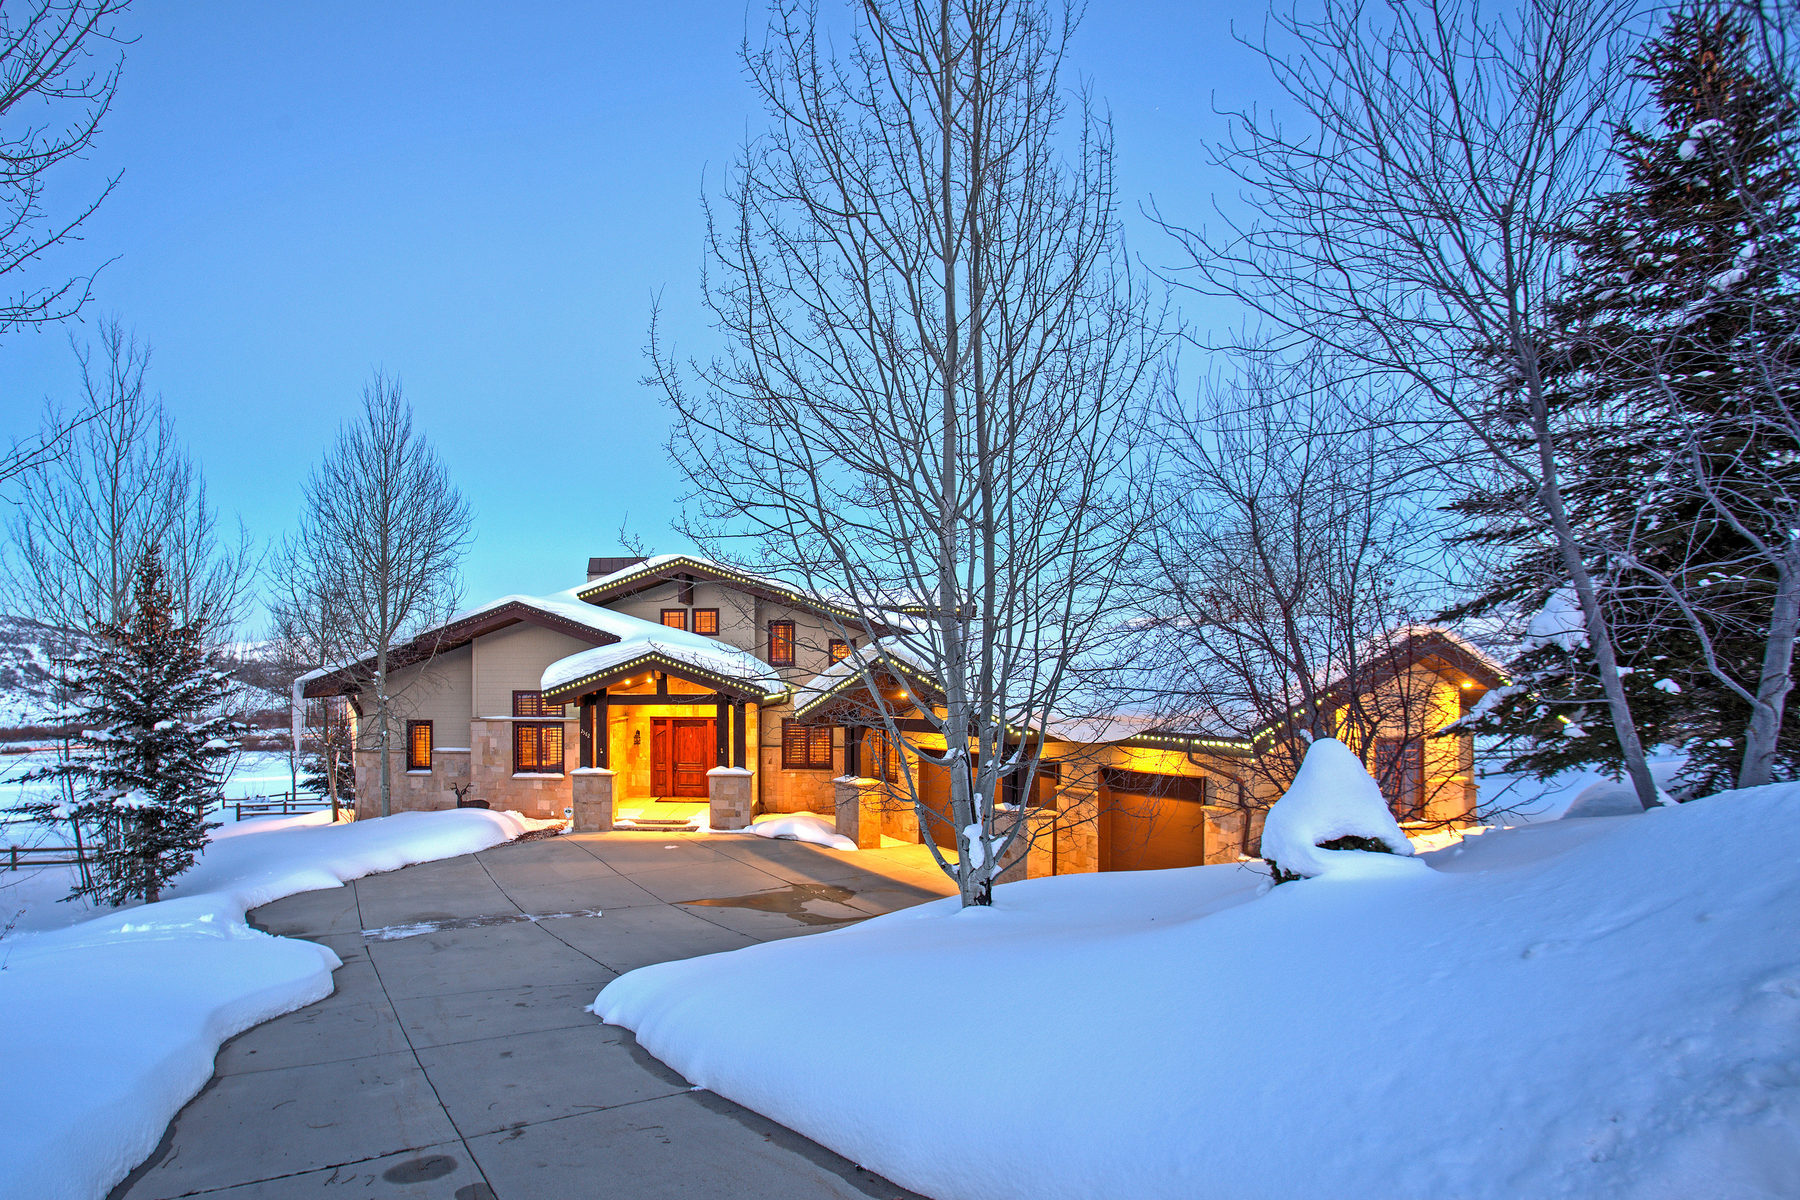 Maison unifamiliale pour l Vente à Stunning Entertainer's Residence in the Heart of Park City 2582 Aspen Springs Dr Park City, Utah, 84060 États-Unis